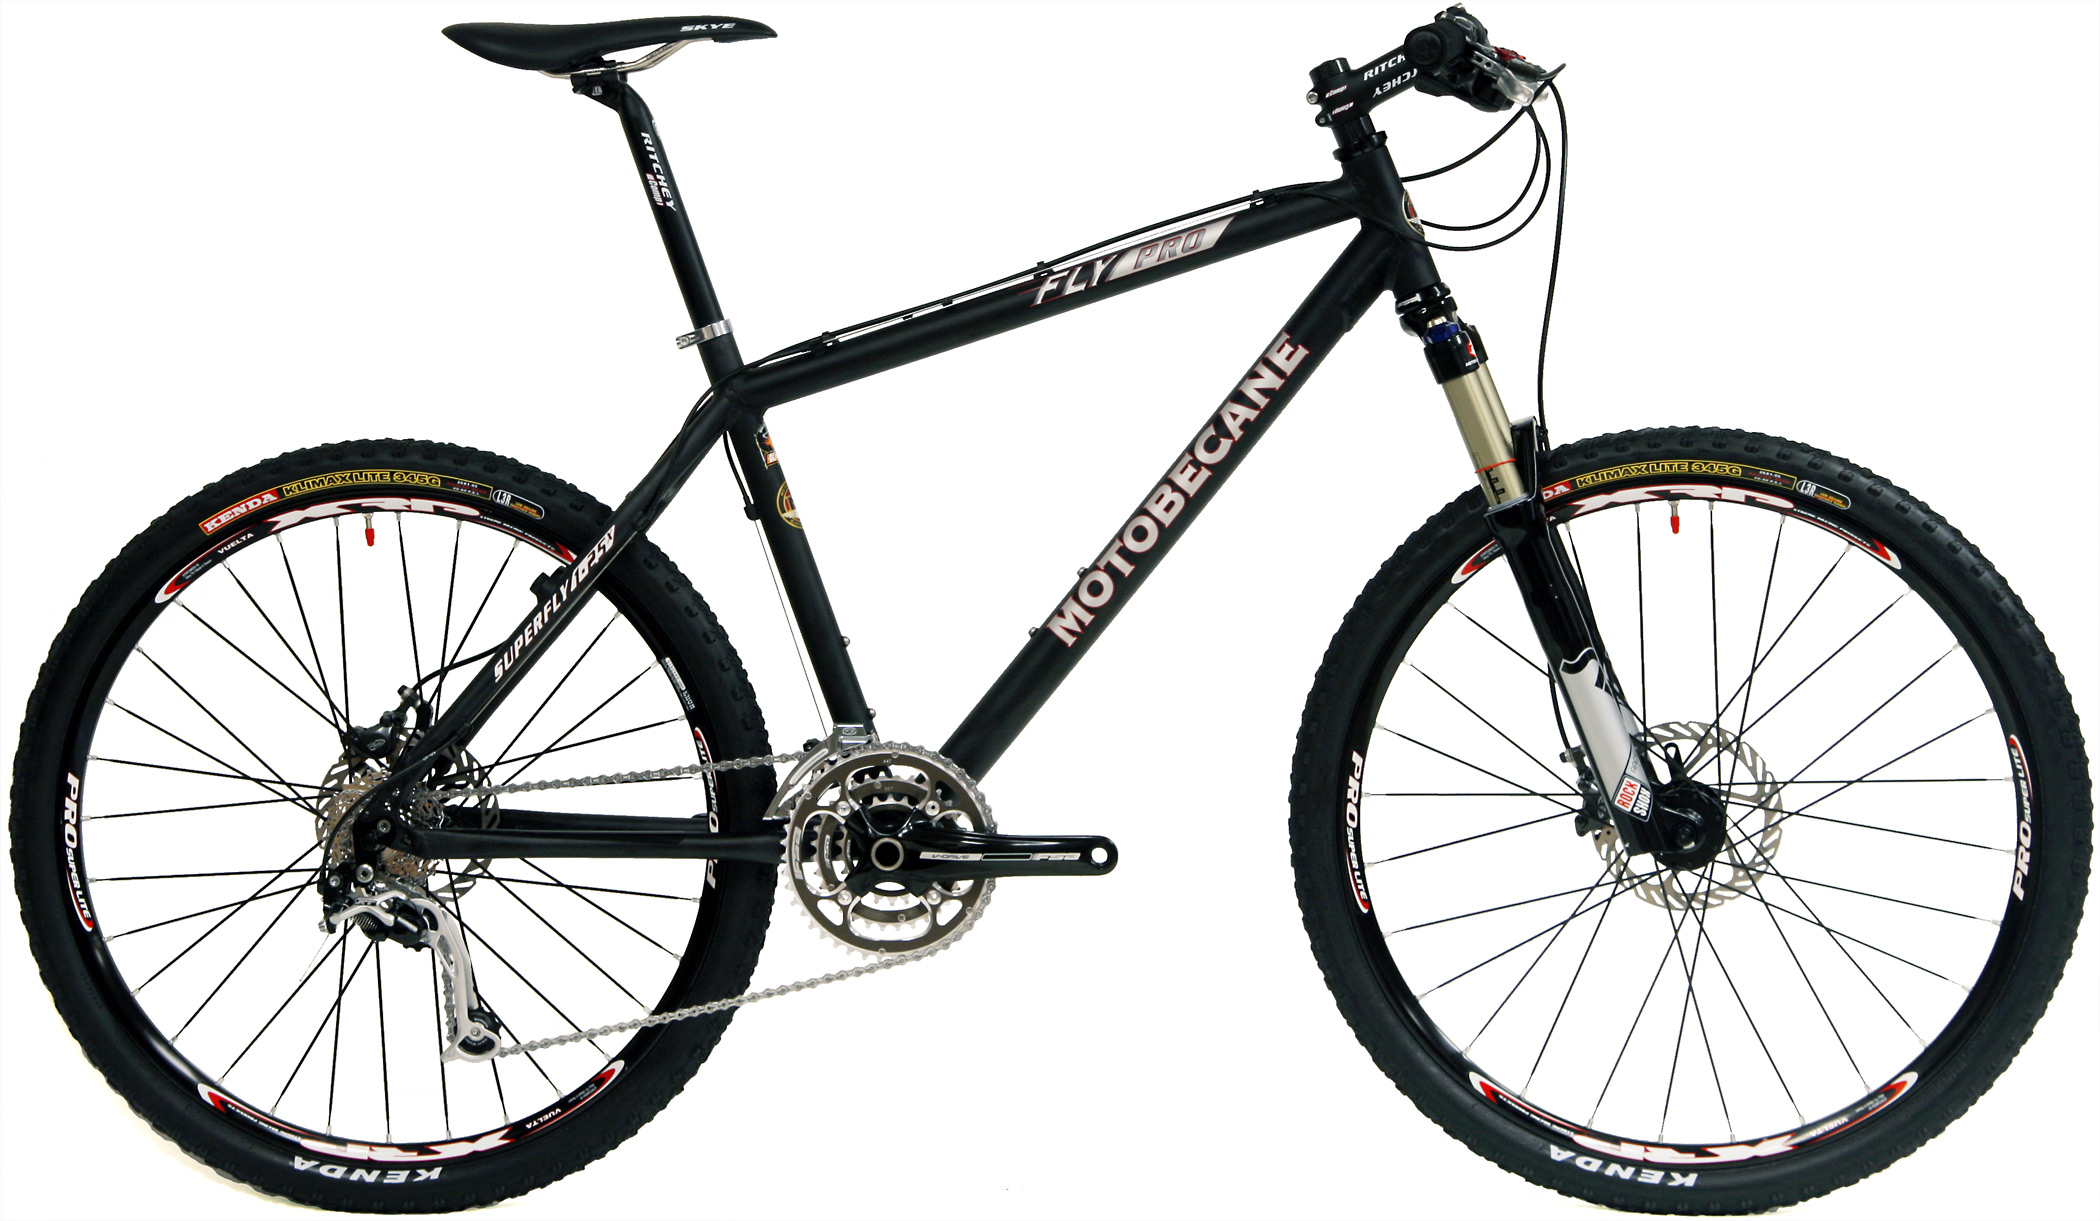 Bikes Motobecane Fly Pro 27 Speed Aluminum Mountain Bike  Image